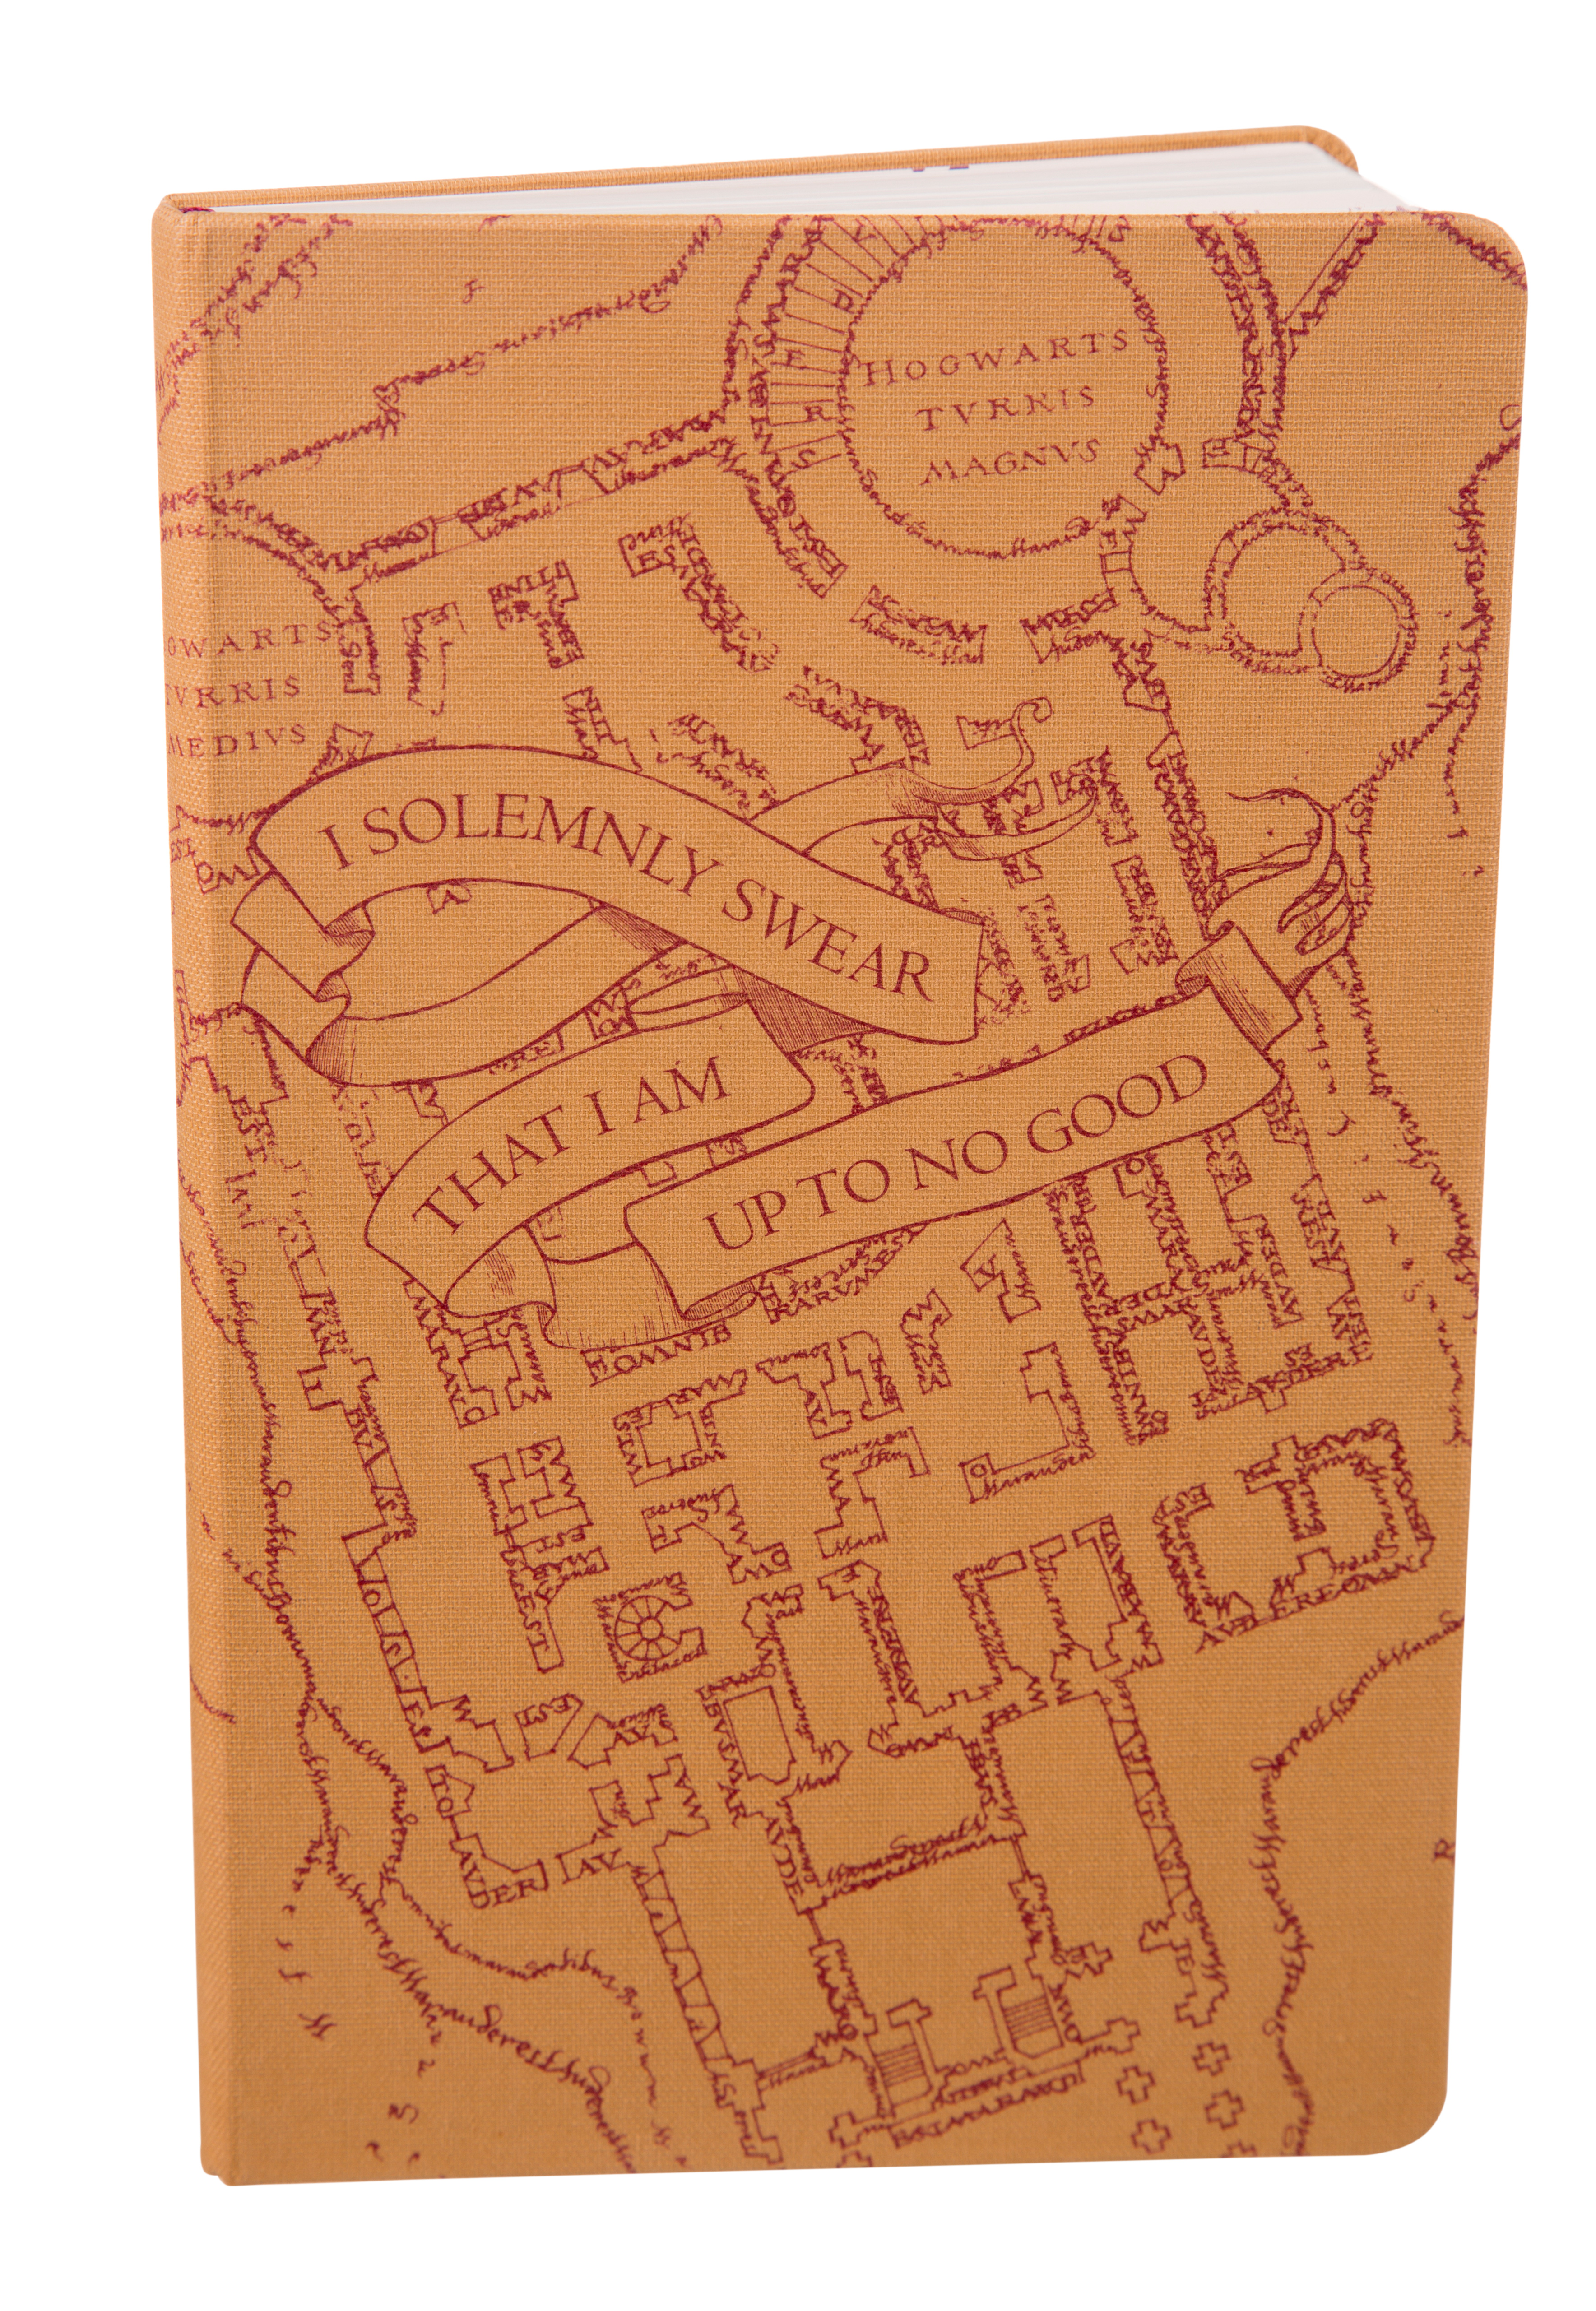 Limited edition harry potter marauder s map ruled notebook from moleskine 240 lines pages cloth bound acid free paper 13 x 21 cm